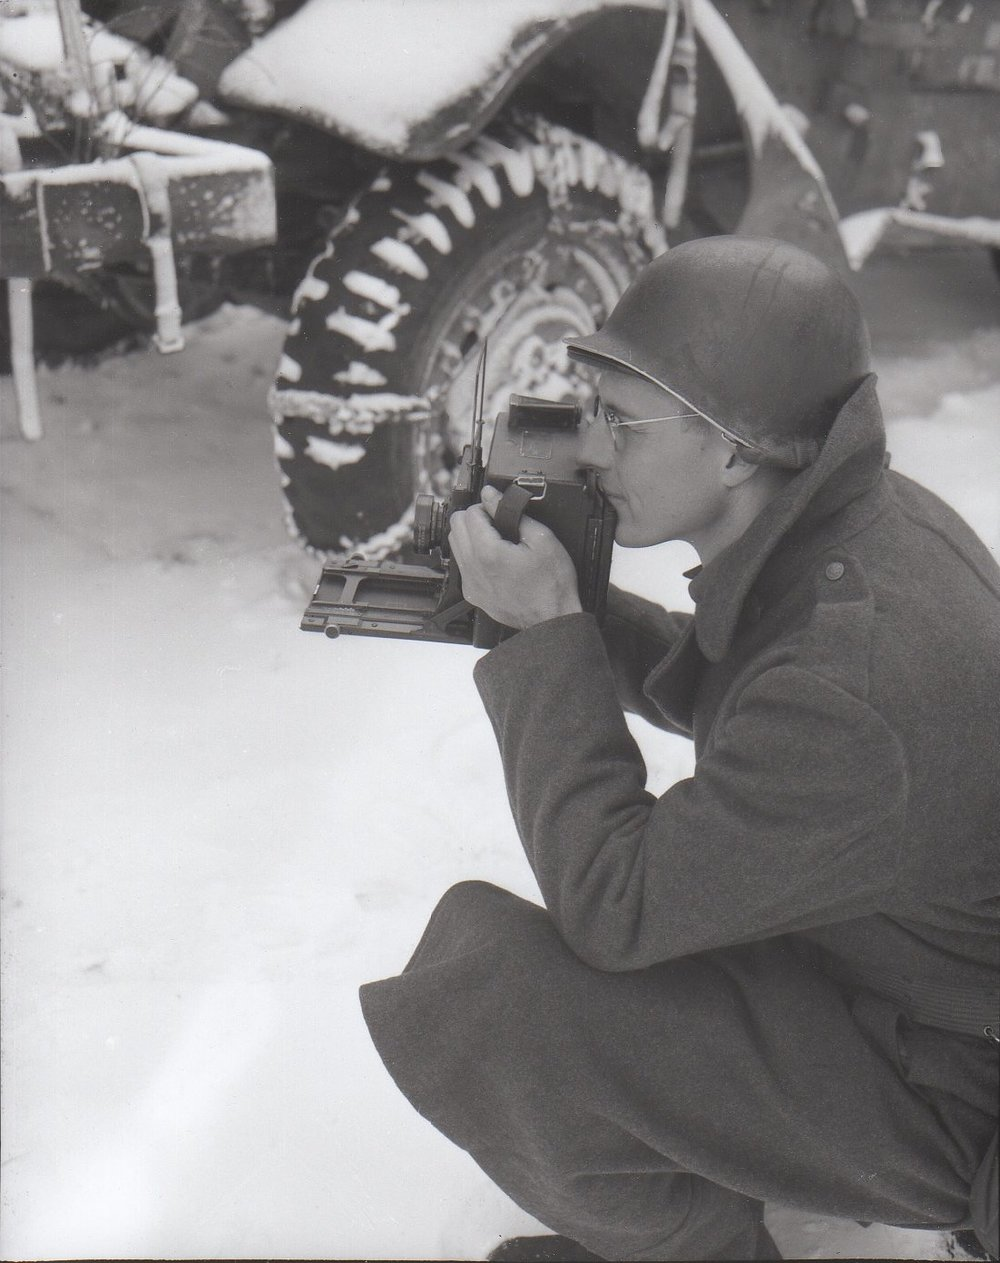 The Lasting Impact of Service - My grandfather, W. Bryan Allen, was a WWII combat photographer. His accounts of the war help piece together a history of tragedy and hope. A couple of years ago I wrote a few words and shared some of my favorite photographs from his tour in Europe.